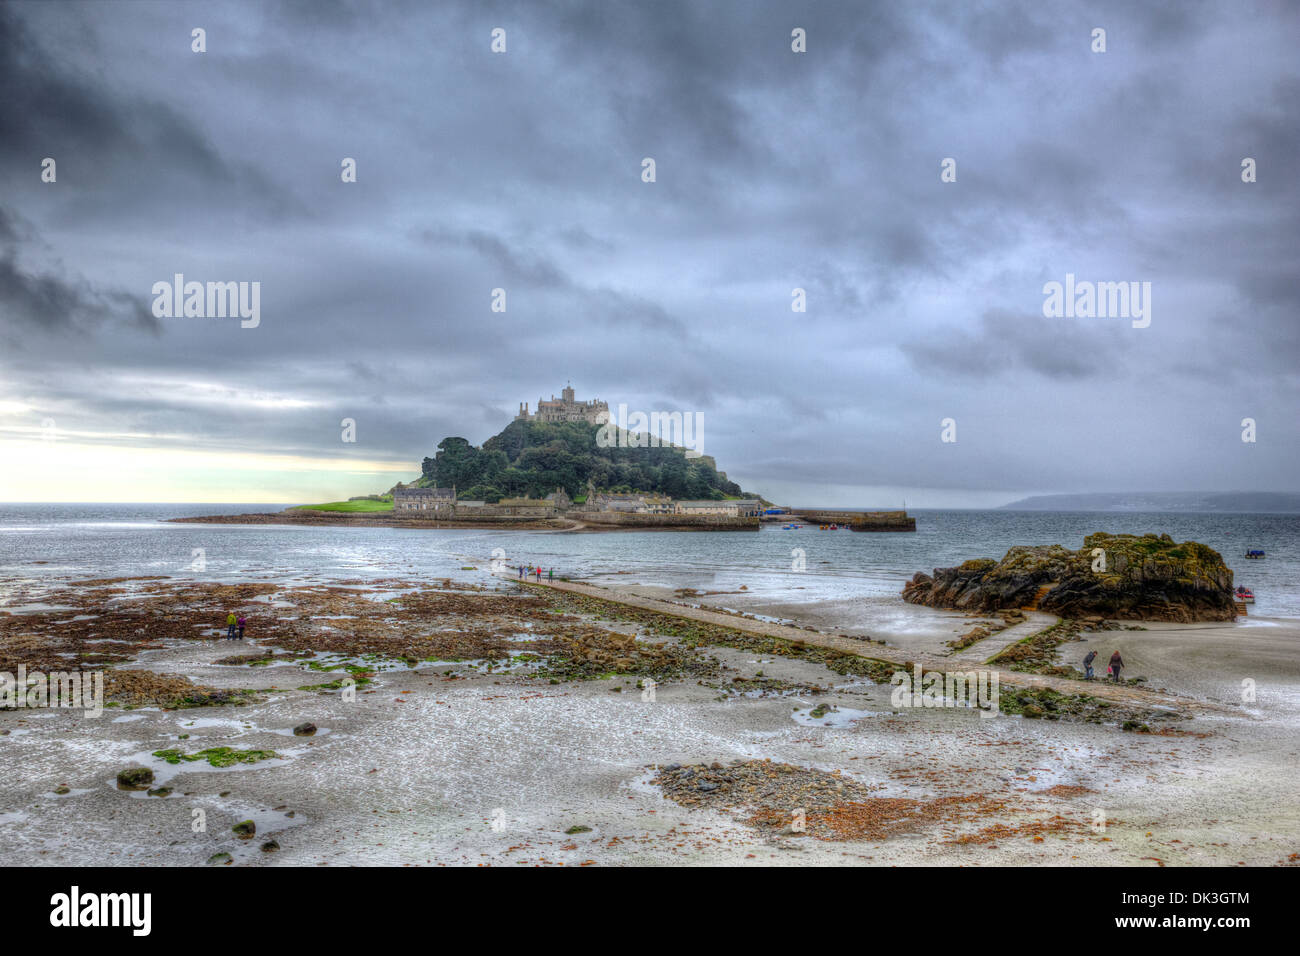 St Michaels Mount Cornwall England medieval castle and church overcast cloudy sky and mist in HDR - Stock Image